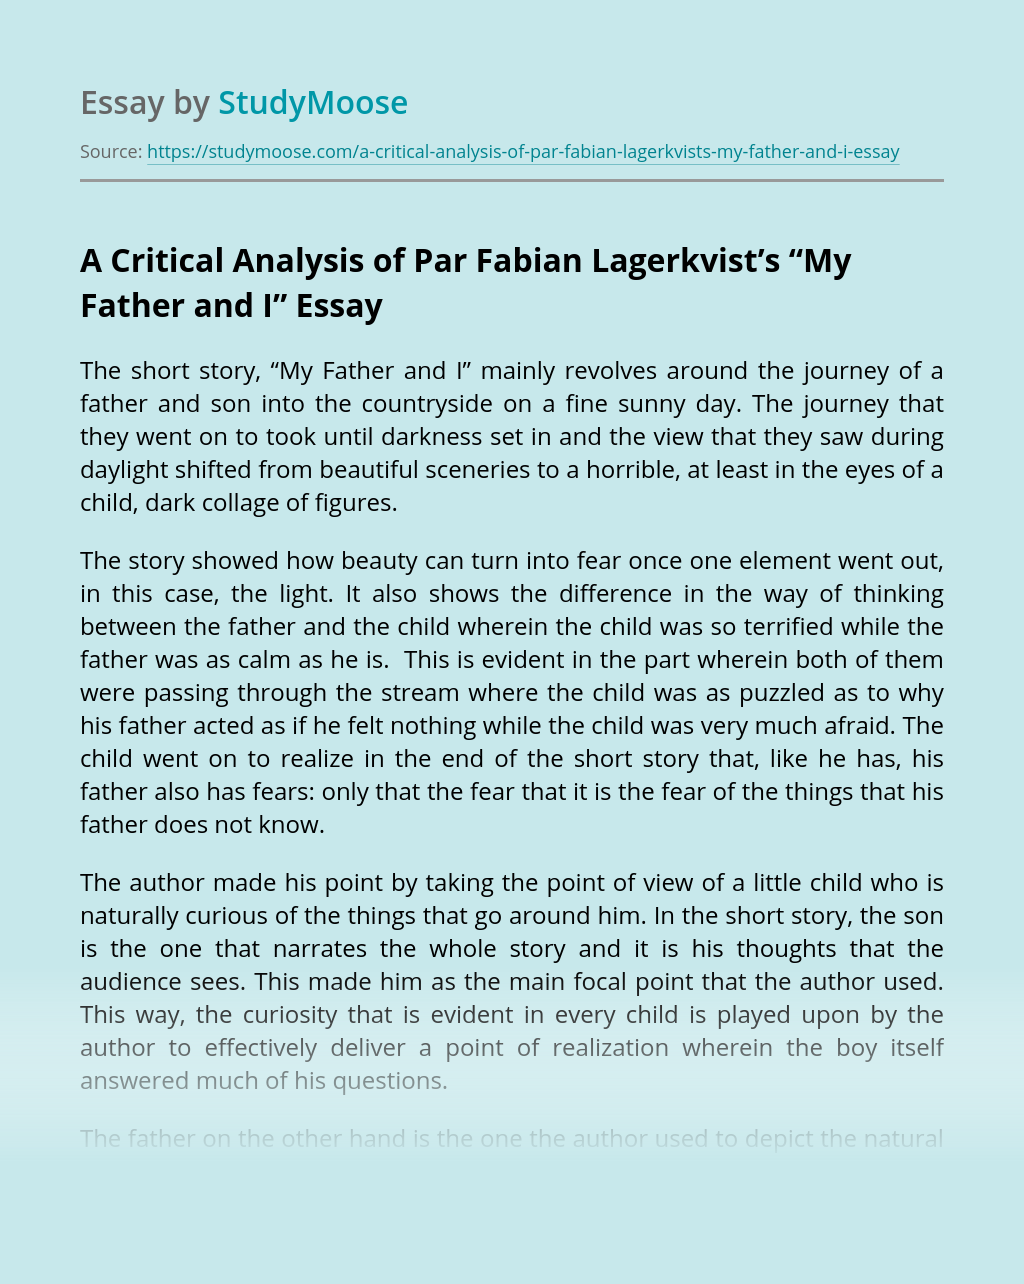 """A Critical Analysis of Par Fabian Lagerkvist's """"My Father and I"""""""